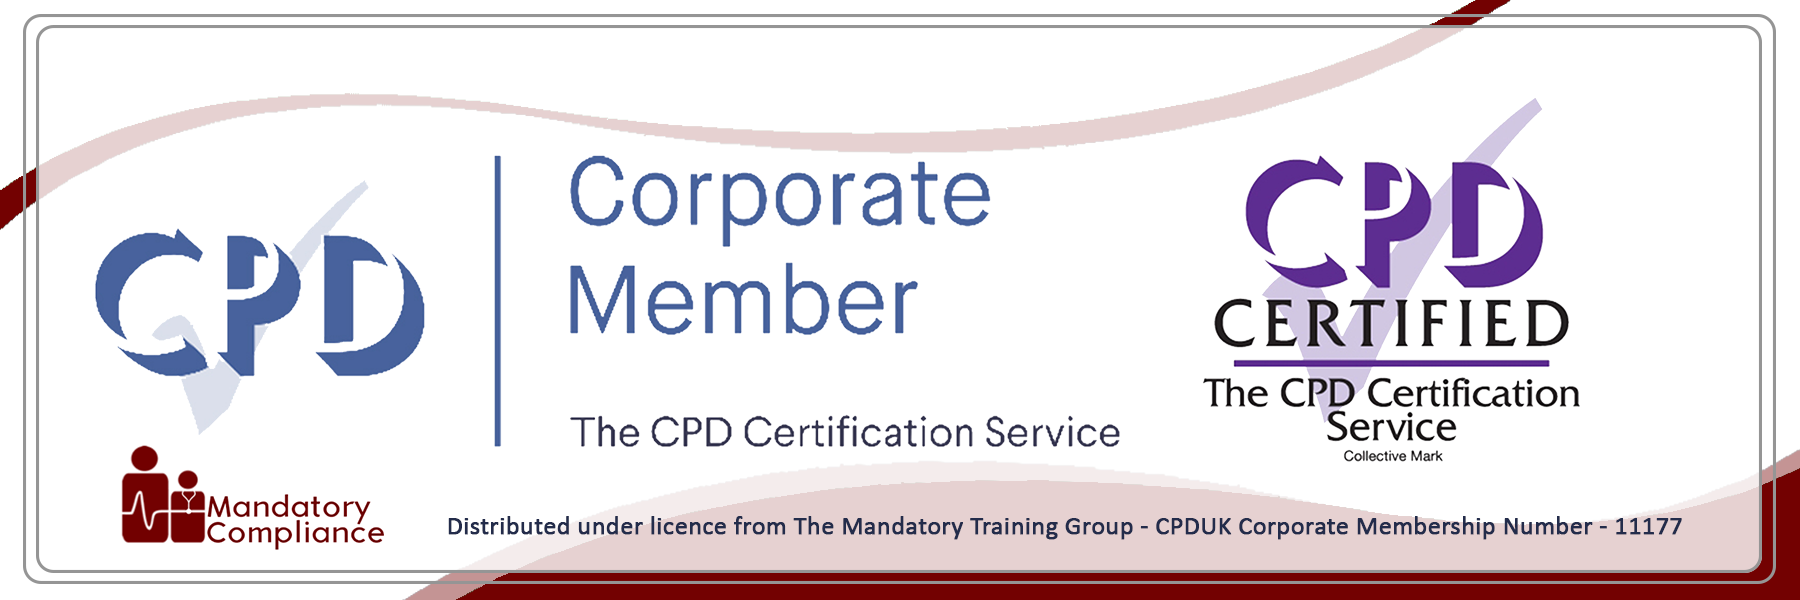 Maternity, Paternity and Adoption - Online Learning Courses - E-Learning Courses - Mandatory Compliance UK -